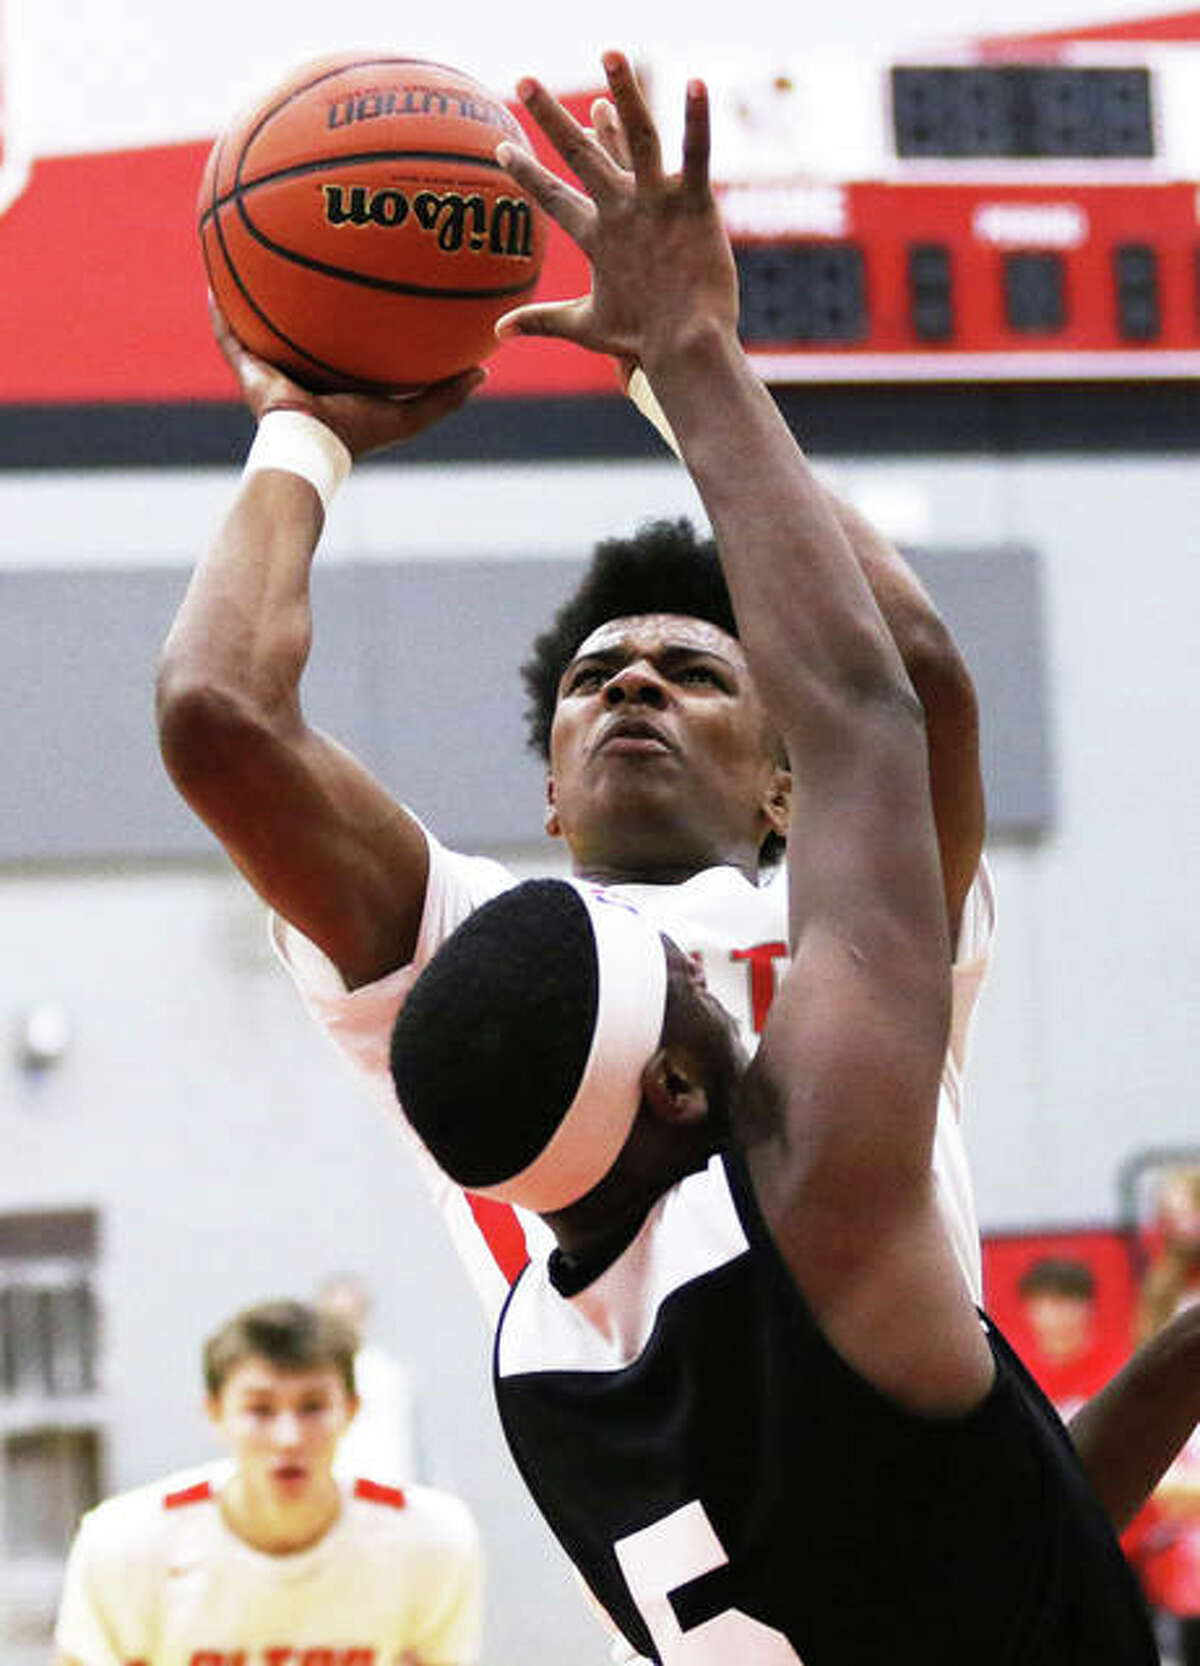 Alton's Moory Woods, shown taking a shot in the lane against Carnahan last month at the Alton Tourney, led the Redbirds with 27 points Thursday in a first-round win at the Centralia Tourney.